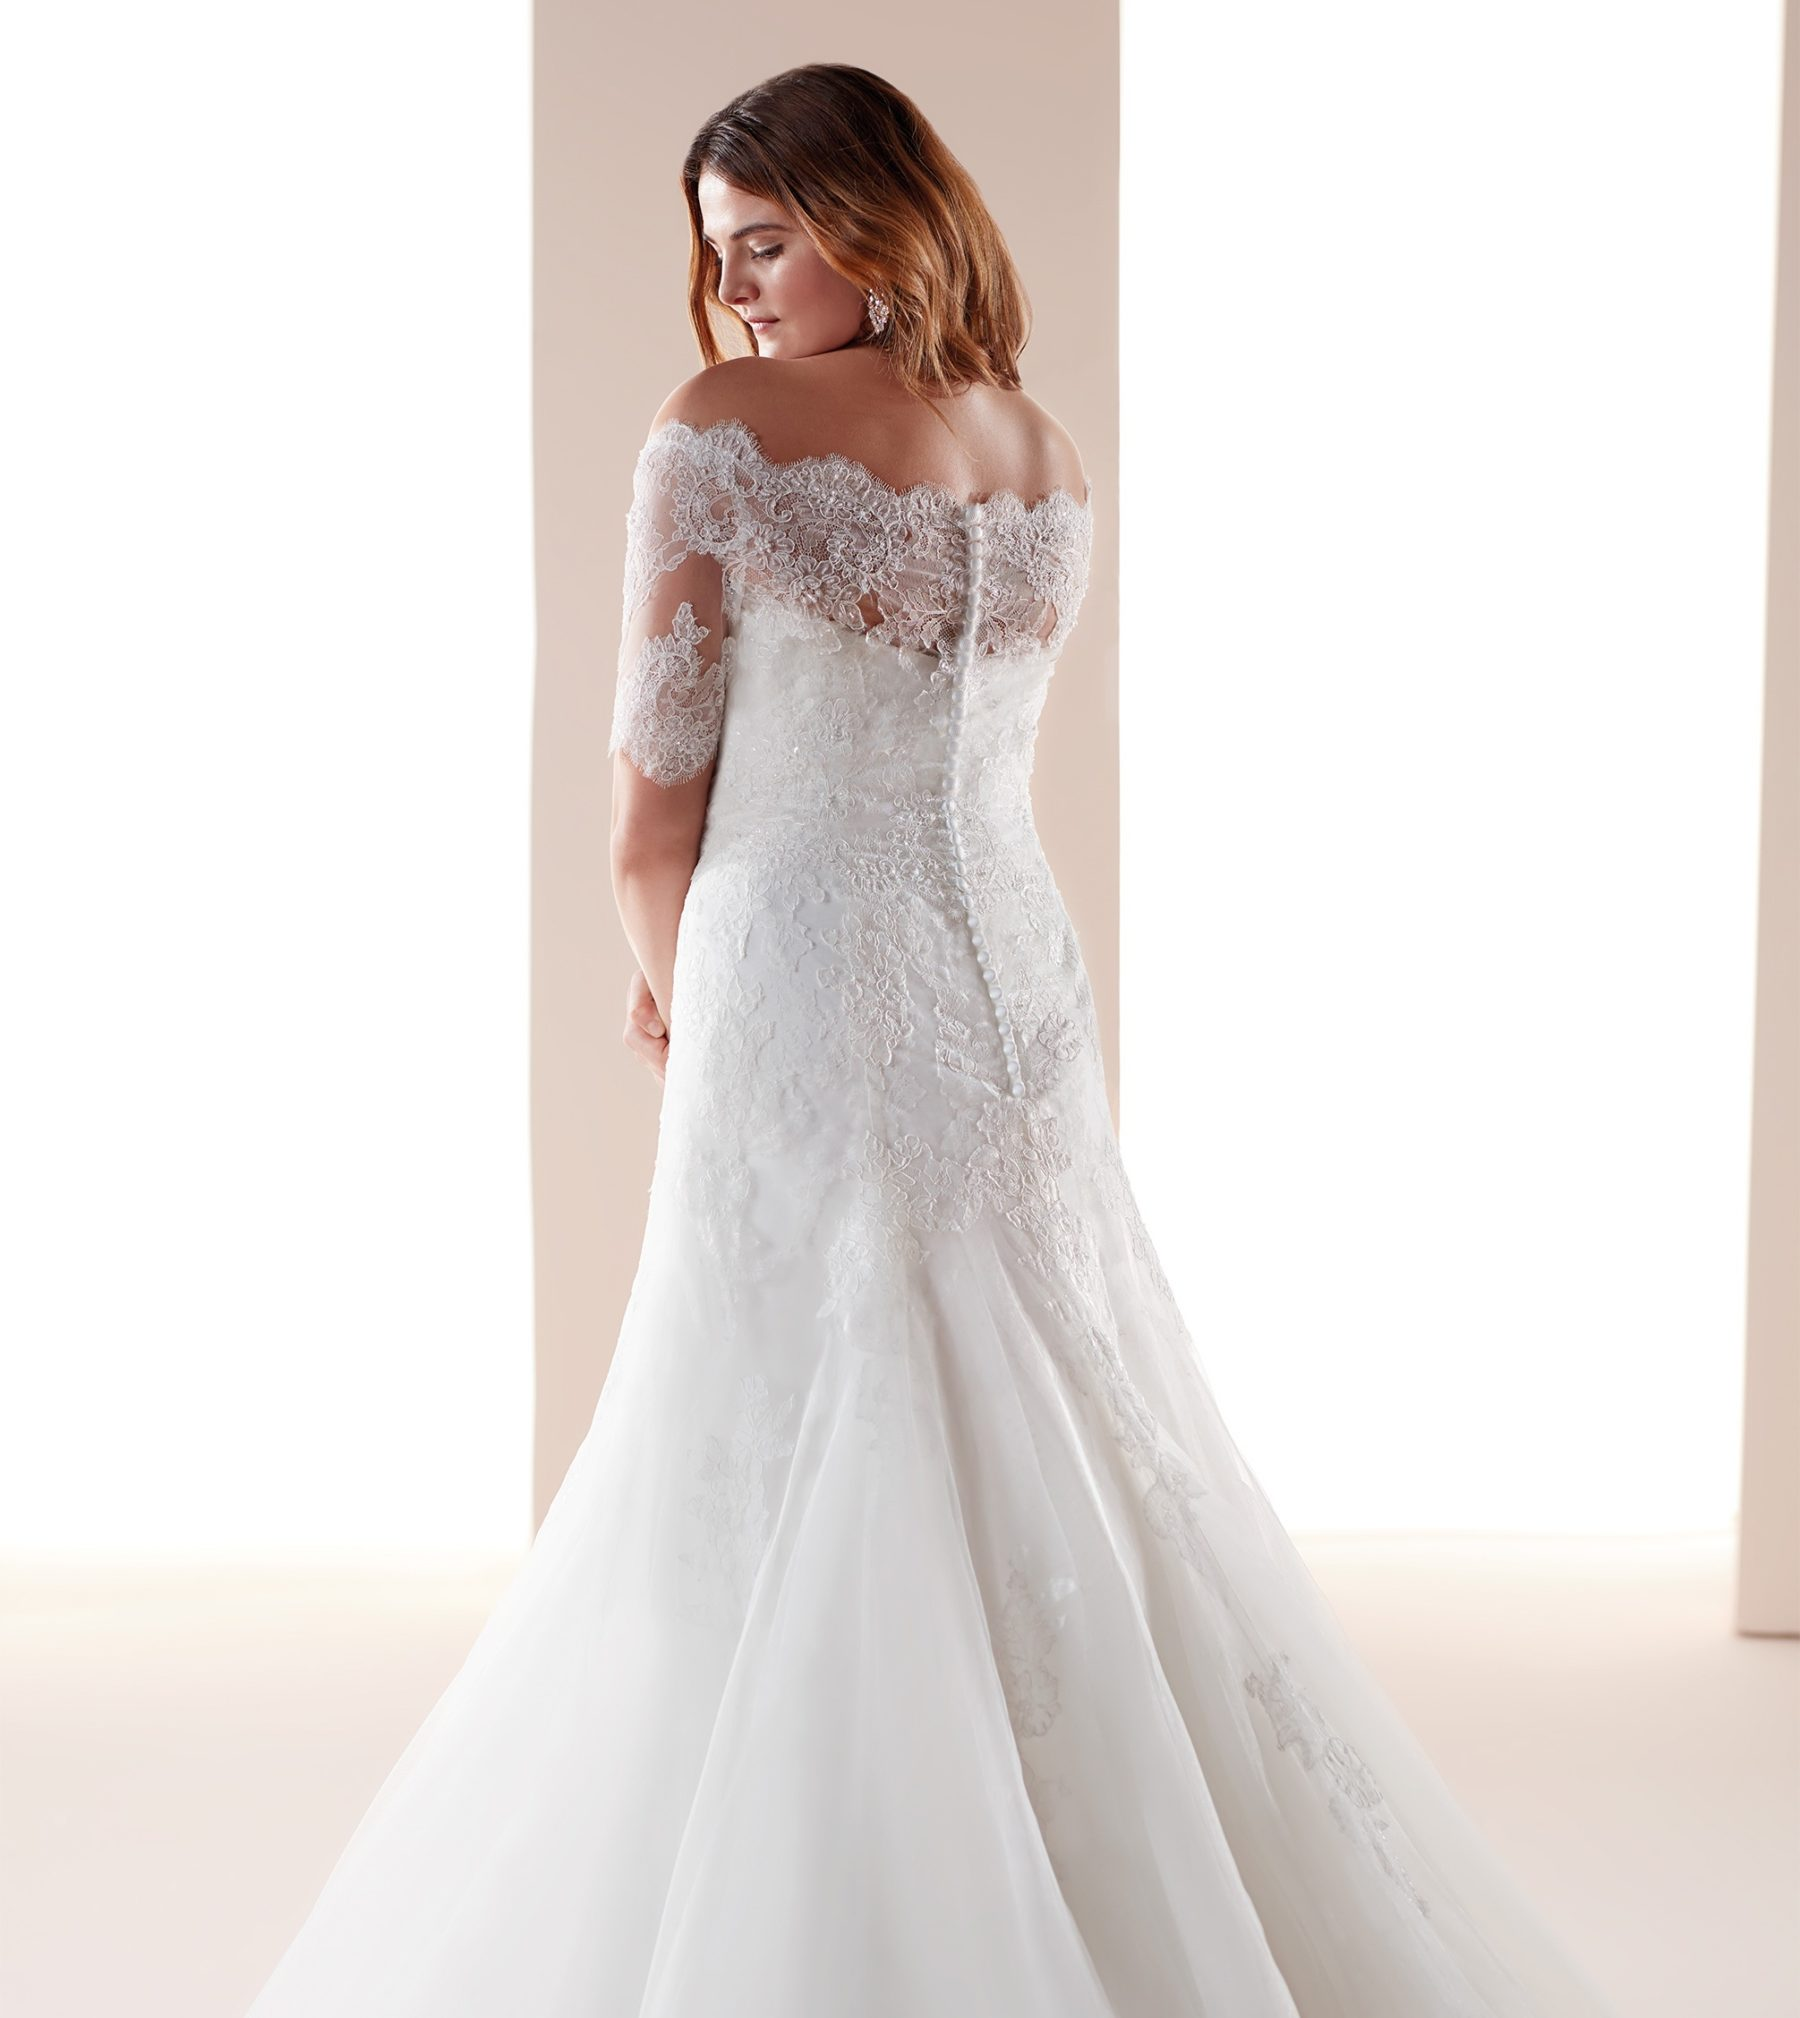 Ivory Pinks Bridal Boutique